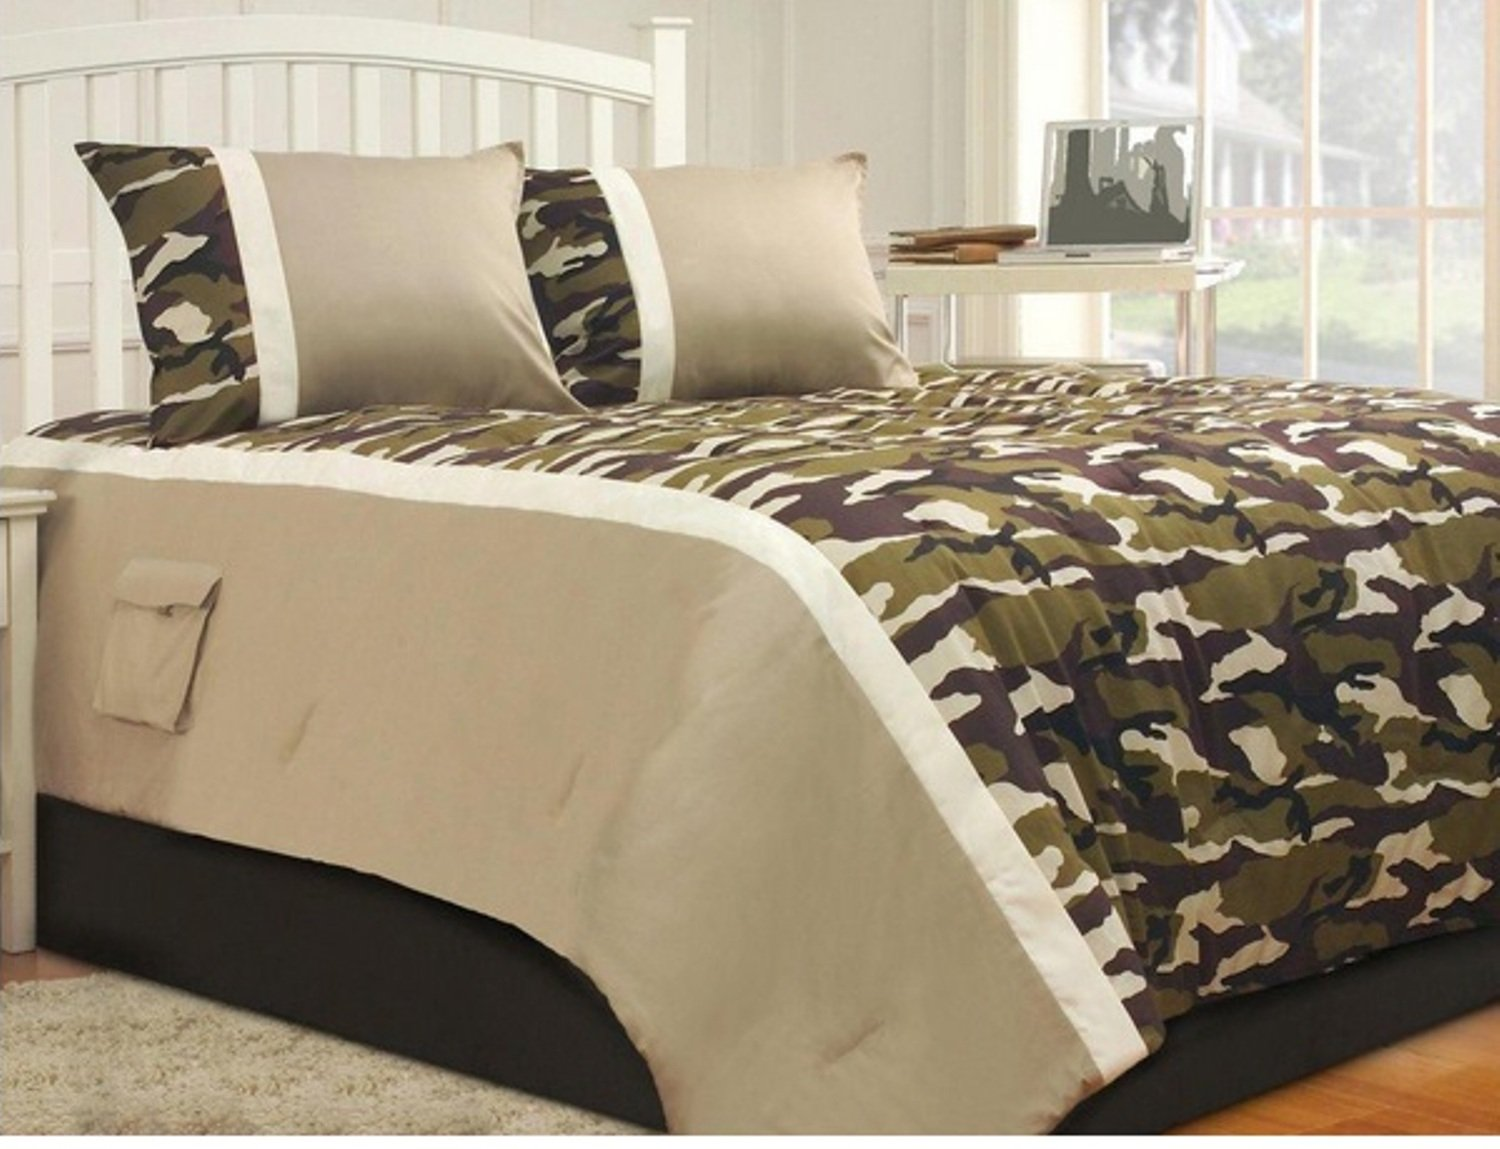 . Cheap Army Bedroom Decor  find Army Bedroom Decor deals on line at